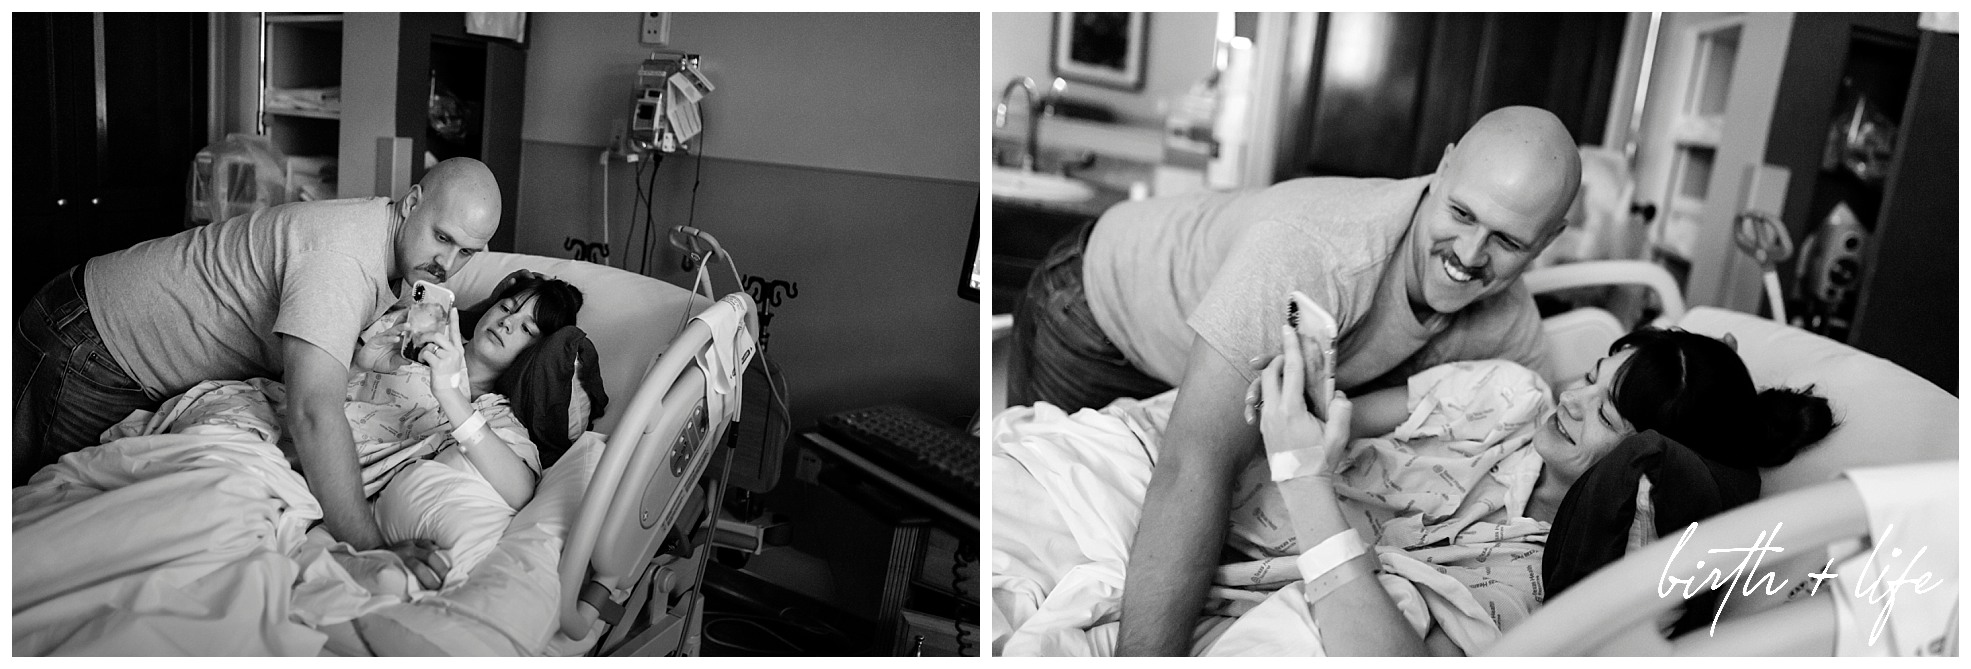 dfw-birth-and-life-photography-family-photojournalism-documentary-birth-storyacclaim-midwives-clark001.jpg